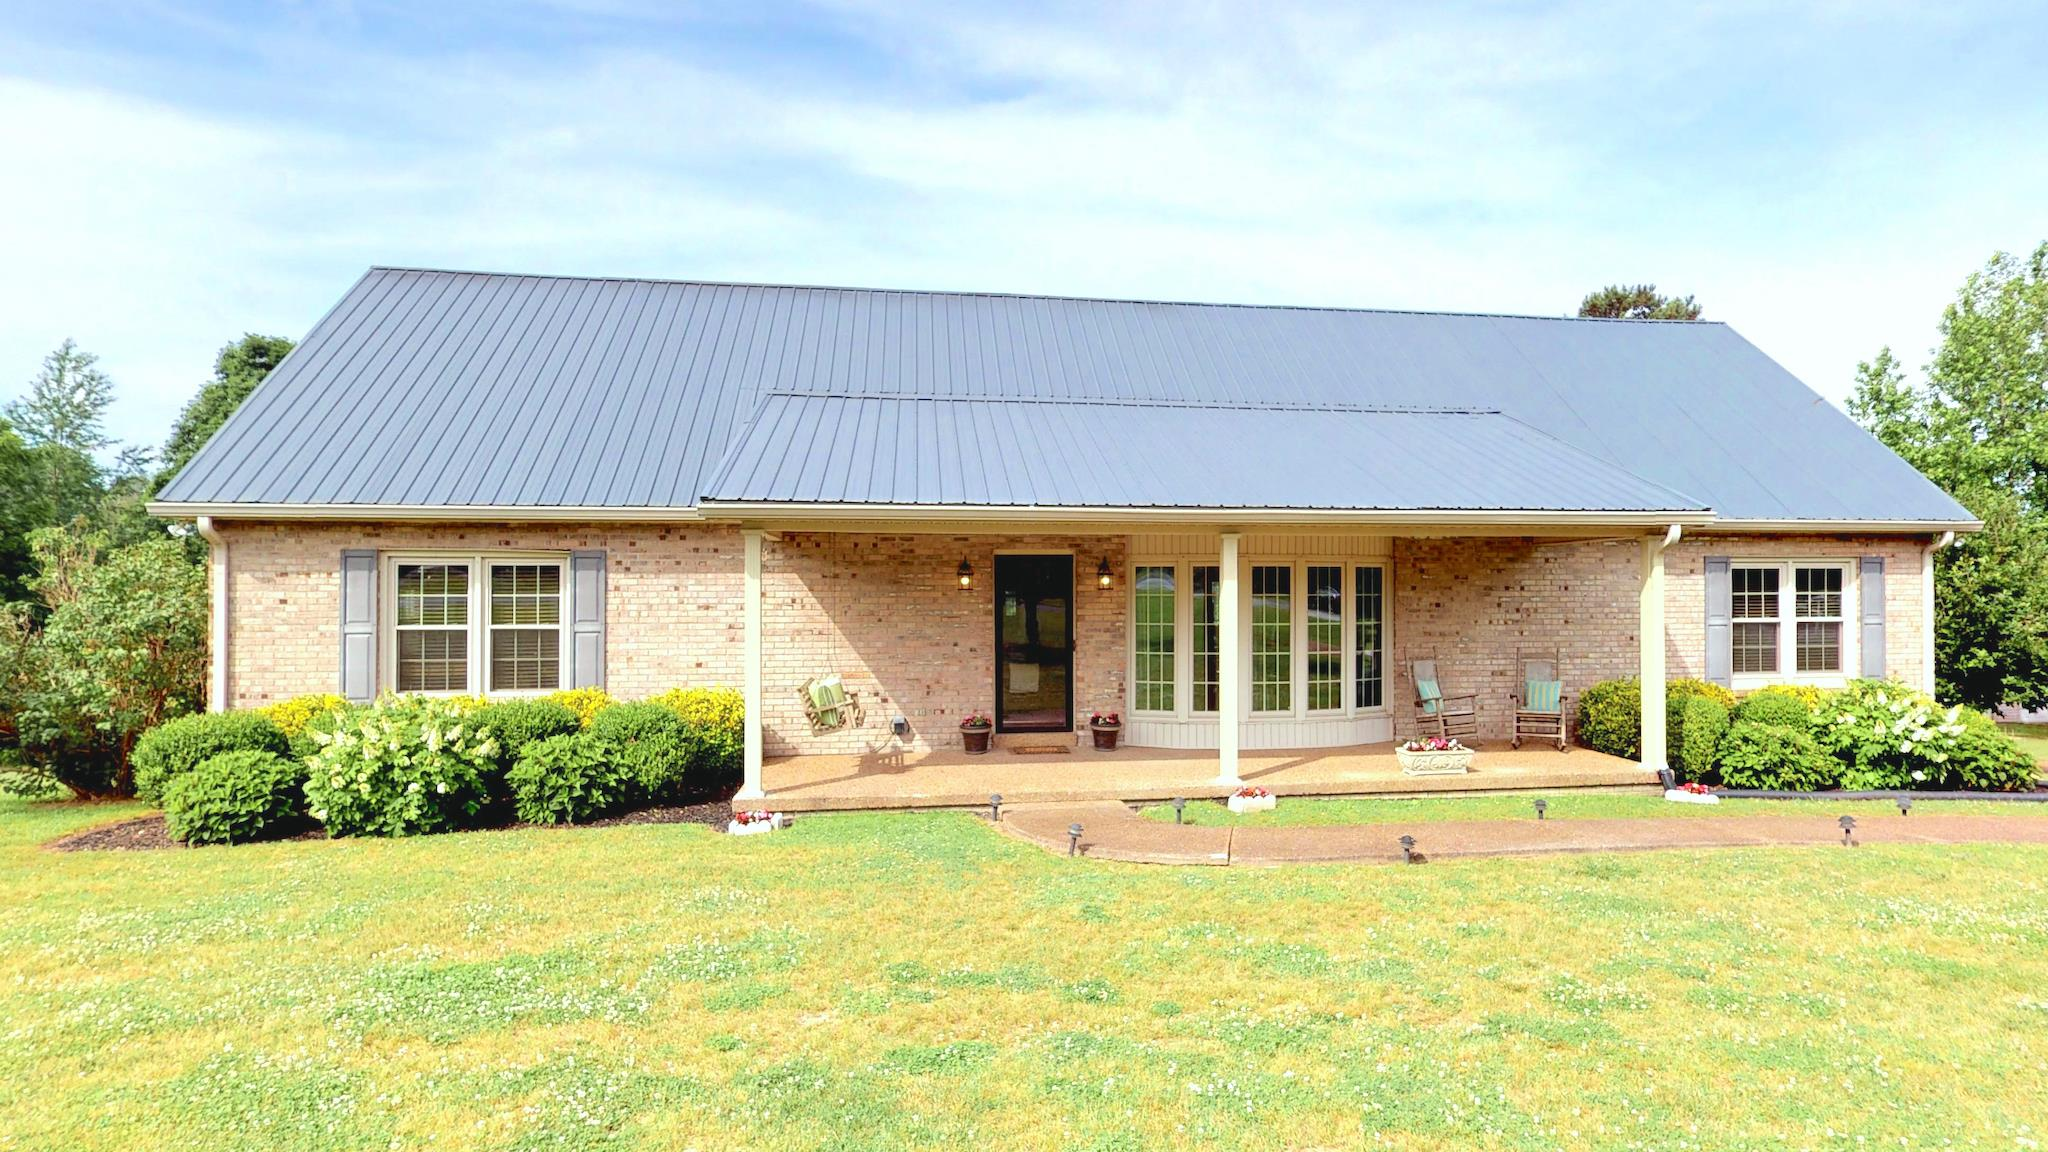 7209 Crow Cut Rd, Fairview in Williamson County County, TN 37062 Home for Sale